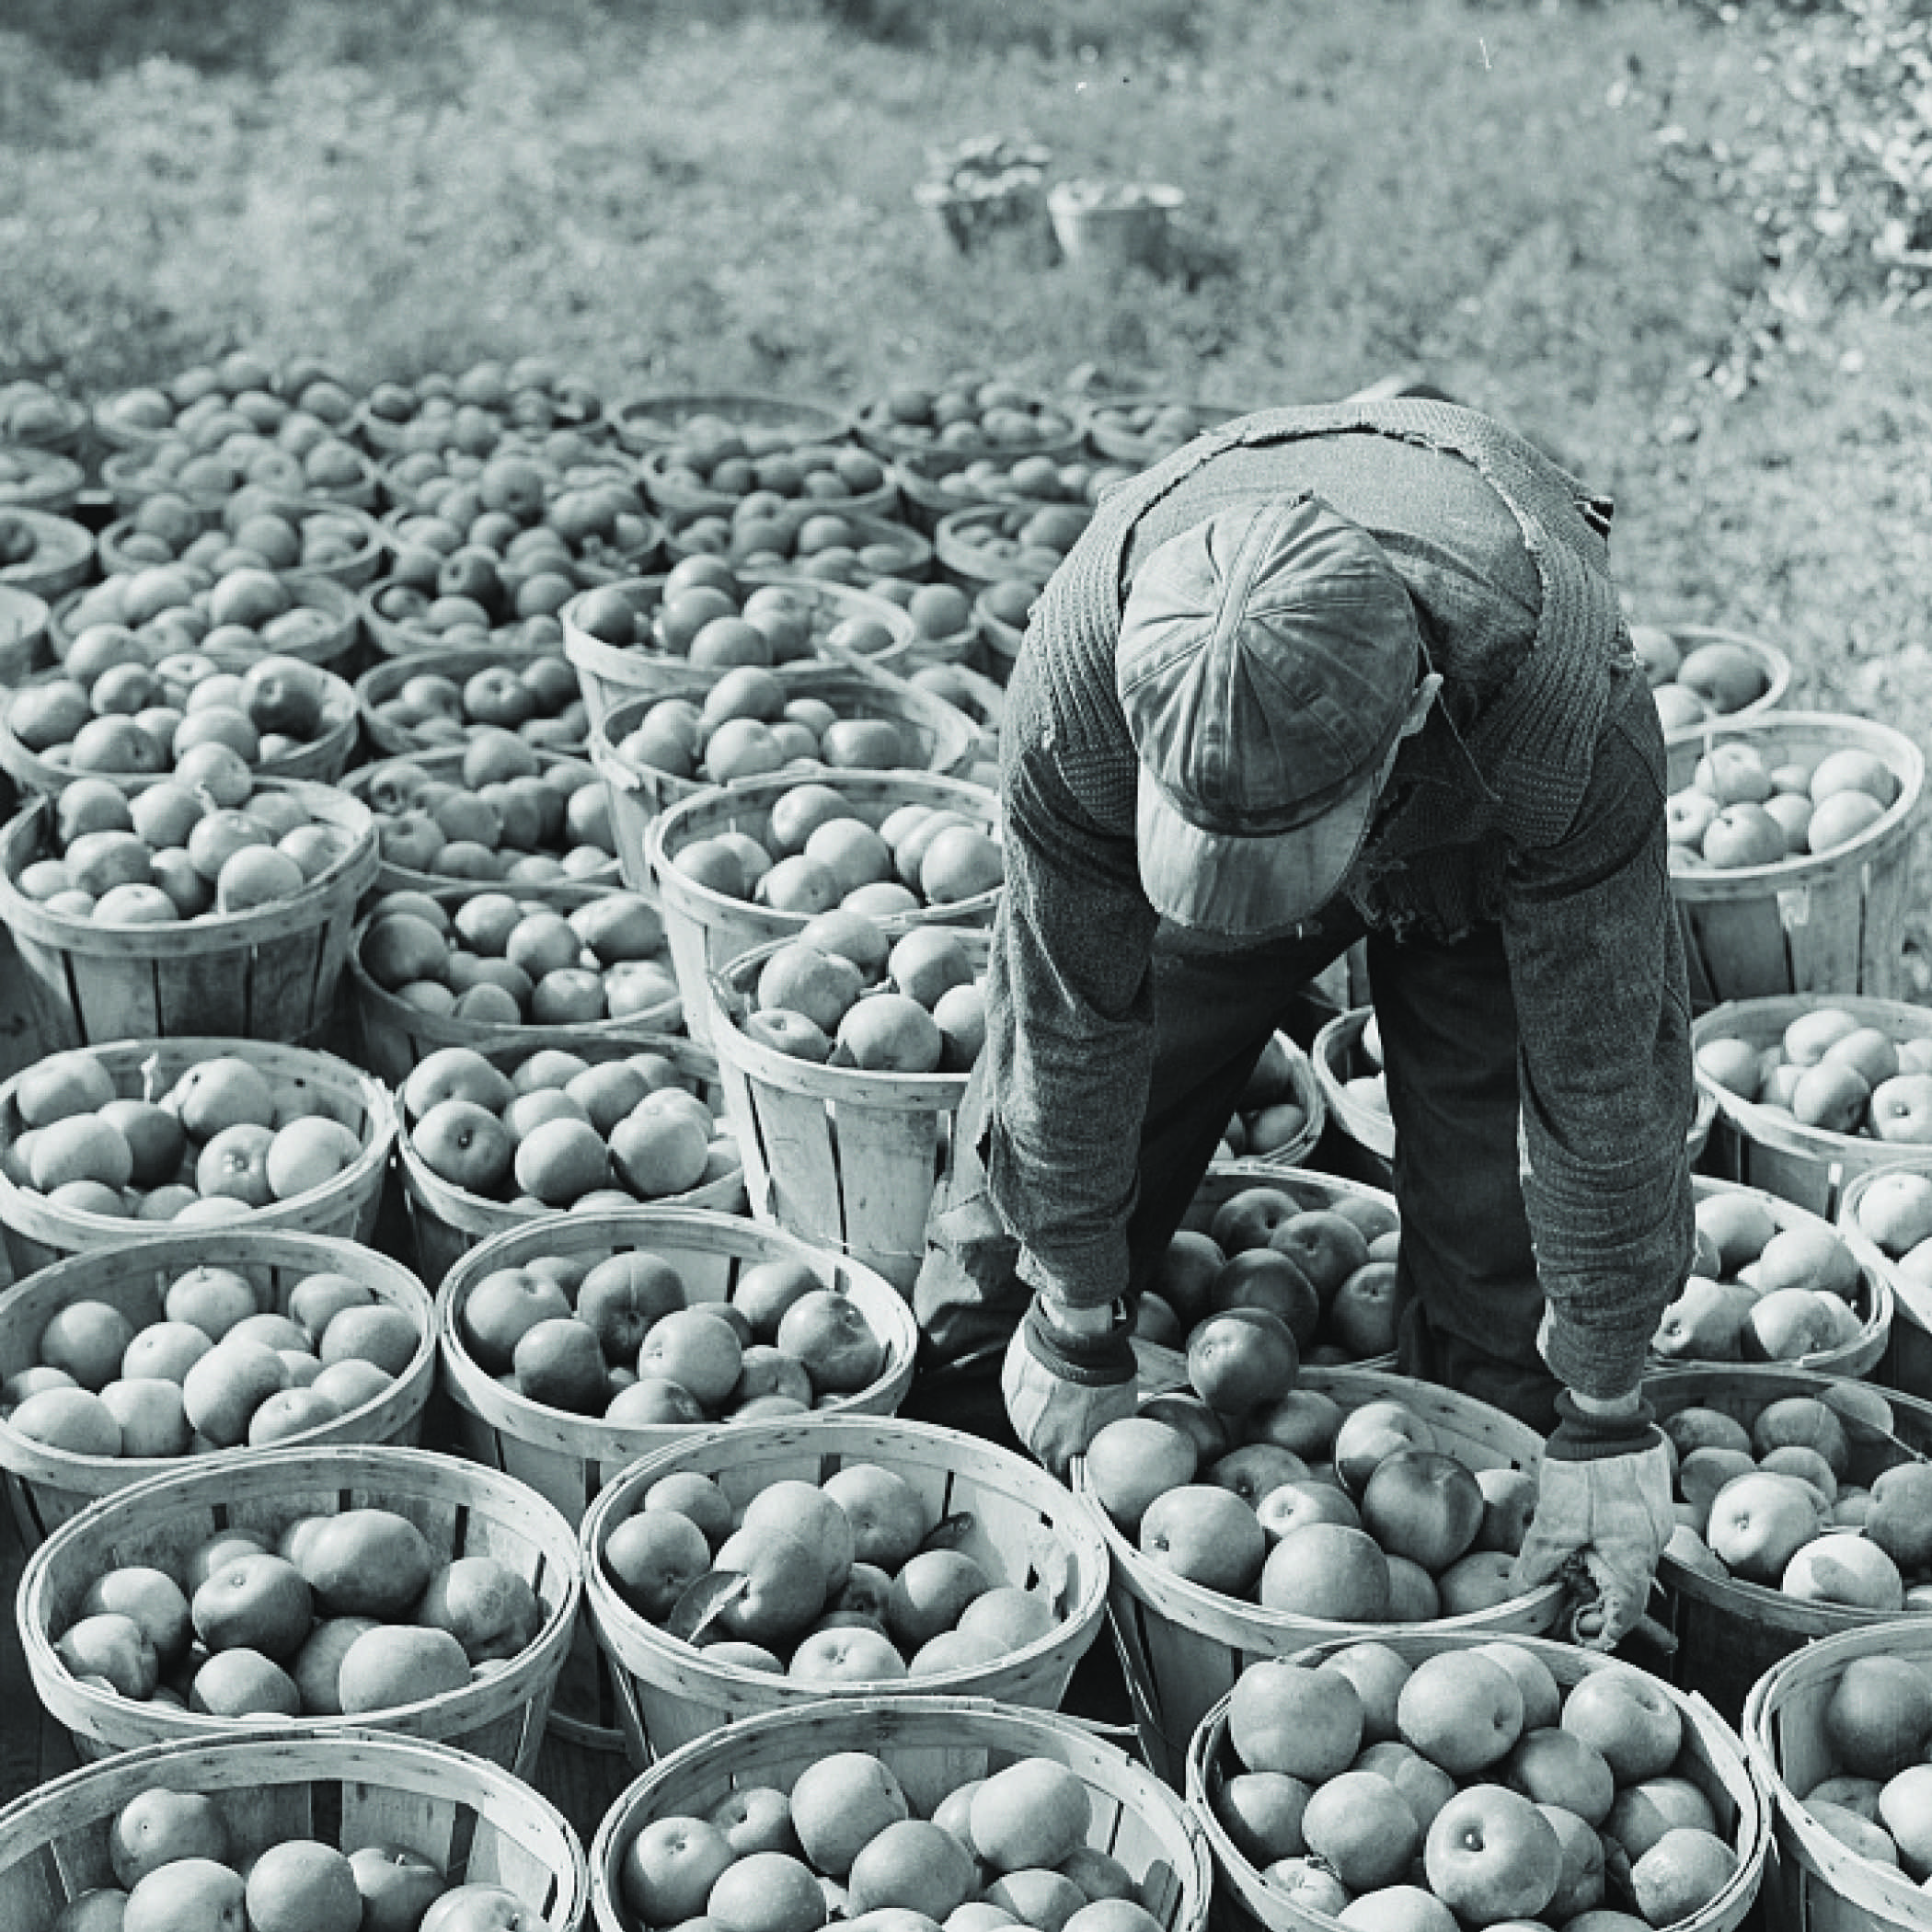 black and white image from the 1930s depicting a man sorting bushel baskets full of apples